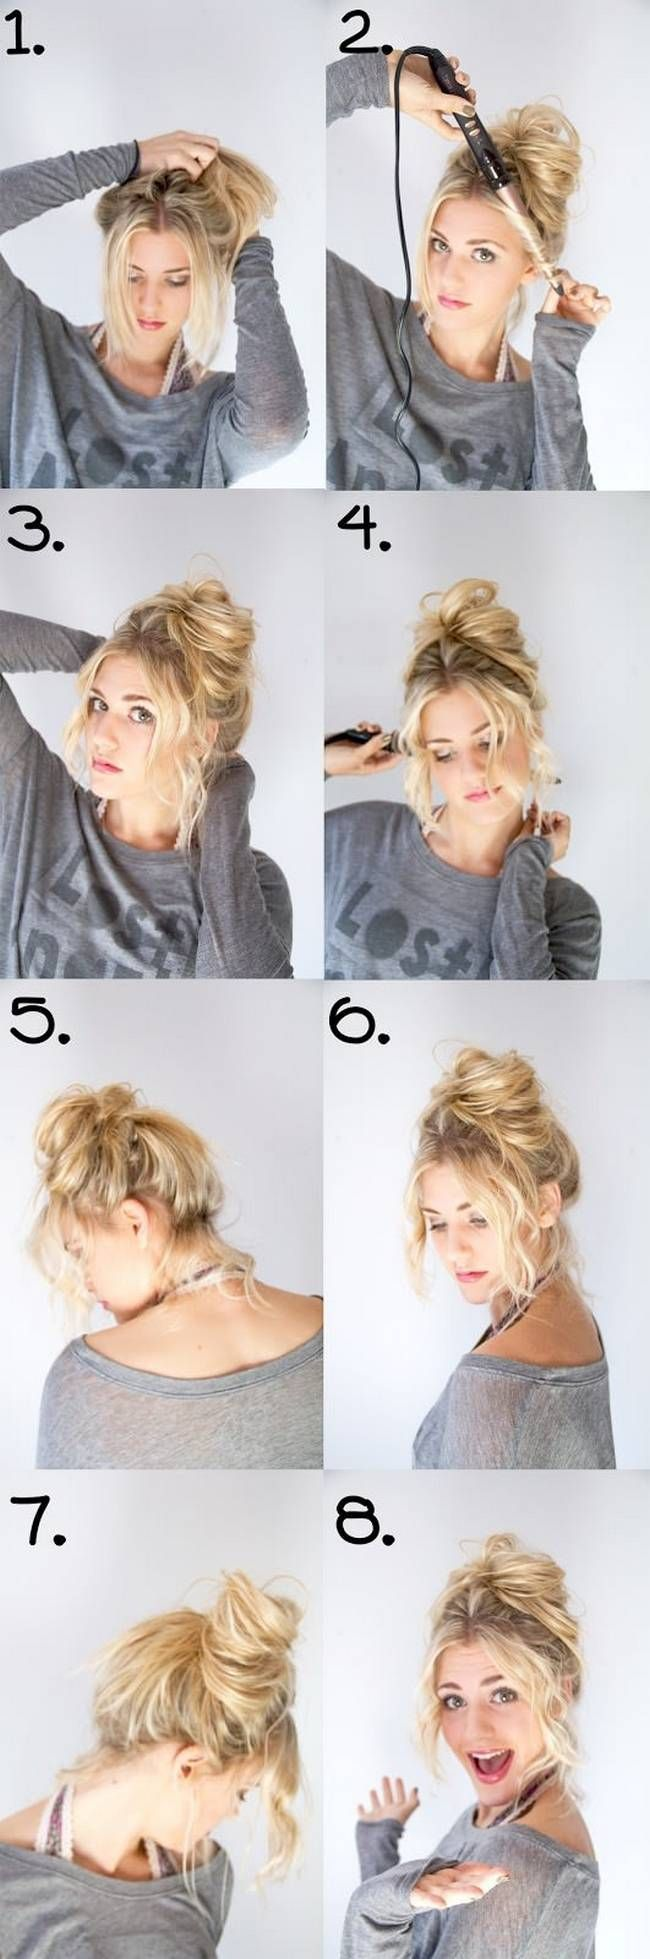 106 best Peinados pelo largo images on Pinterest | Hairstyles, Make ...